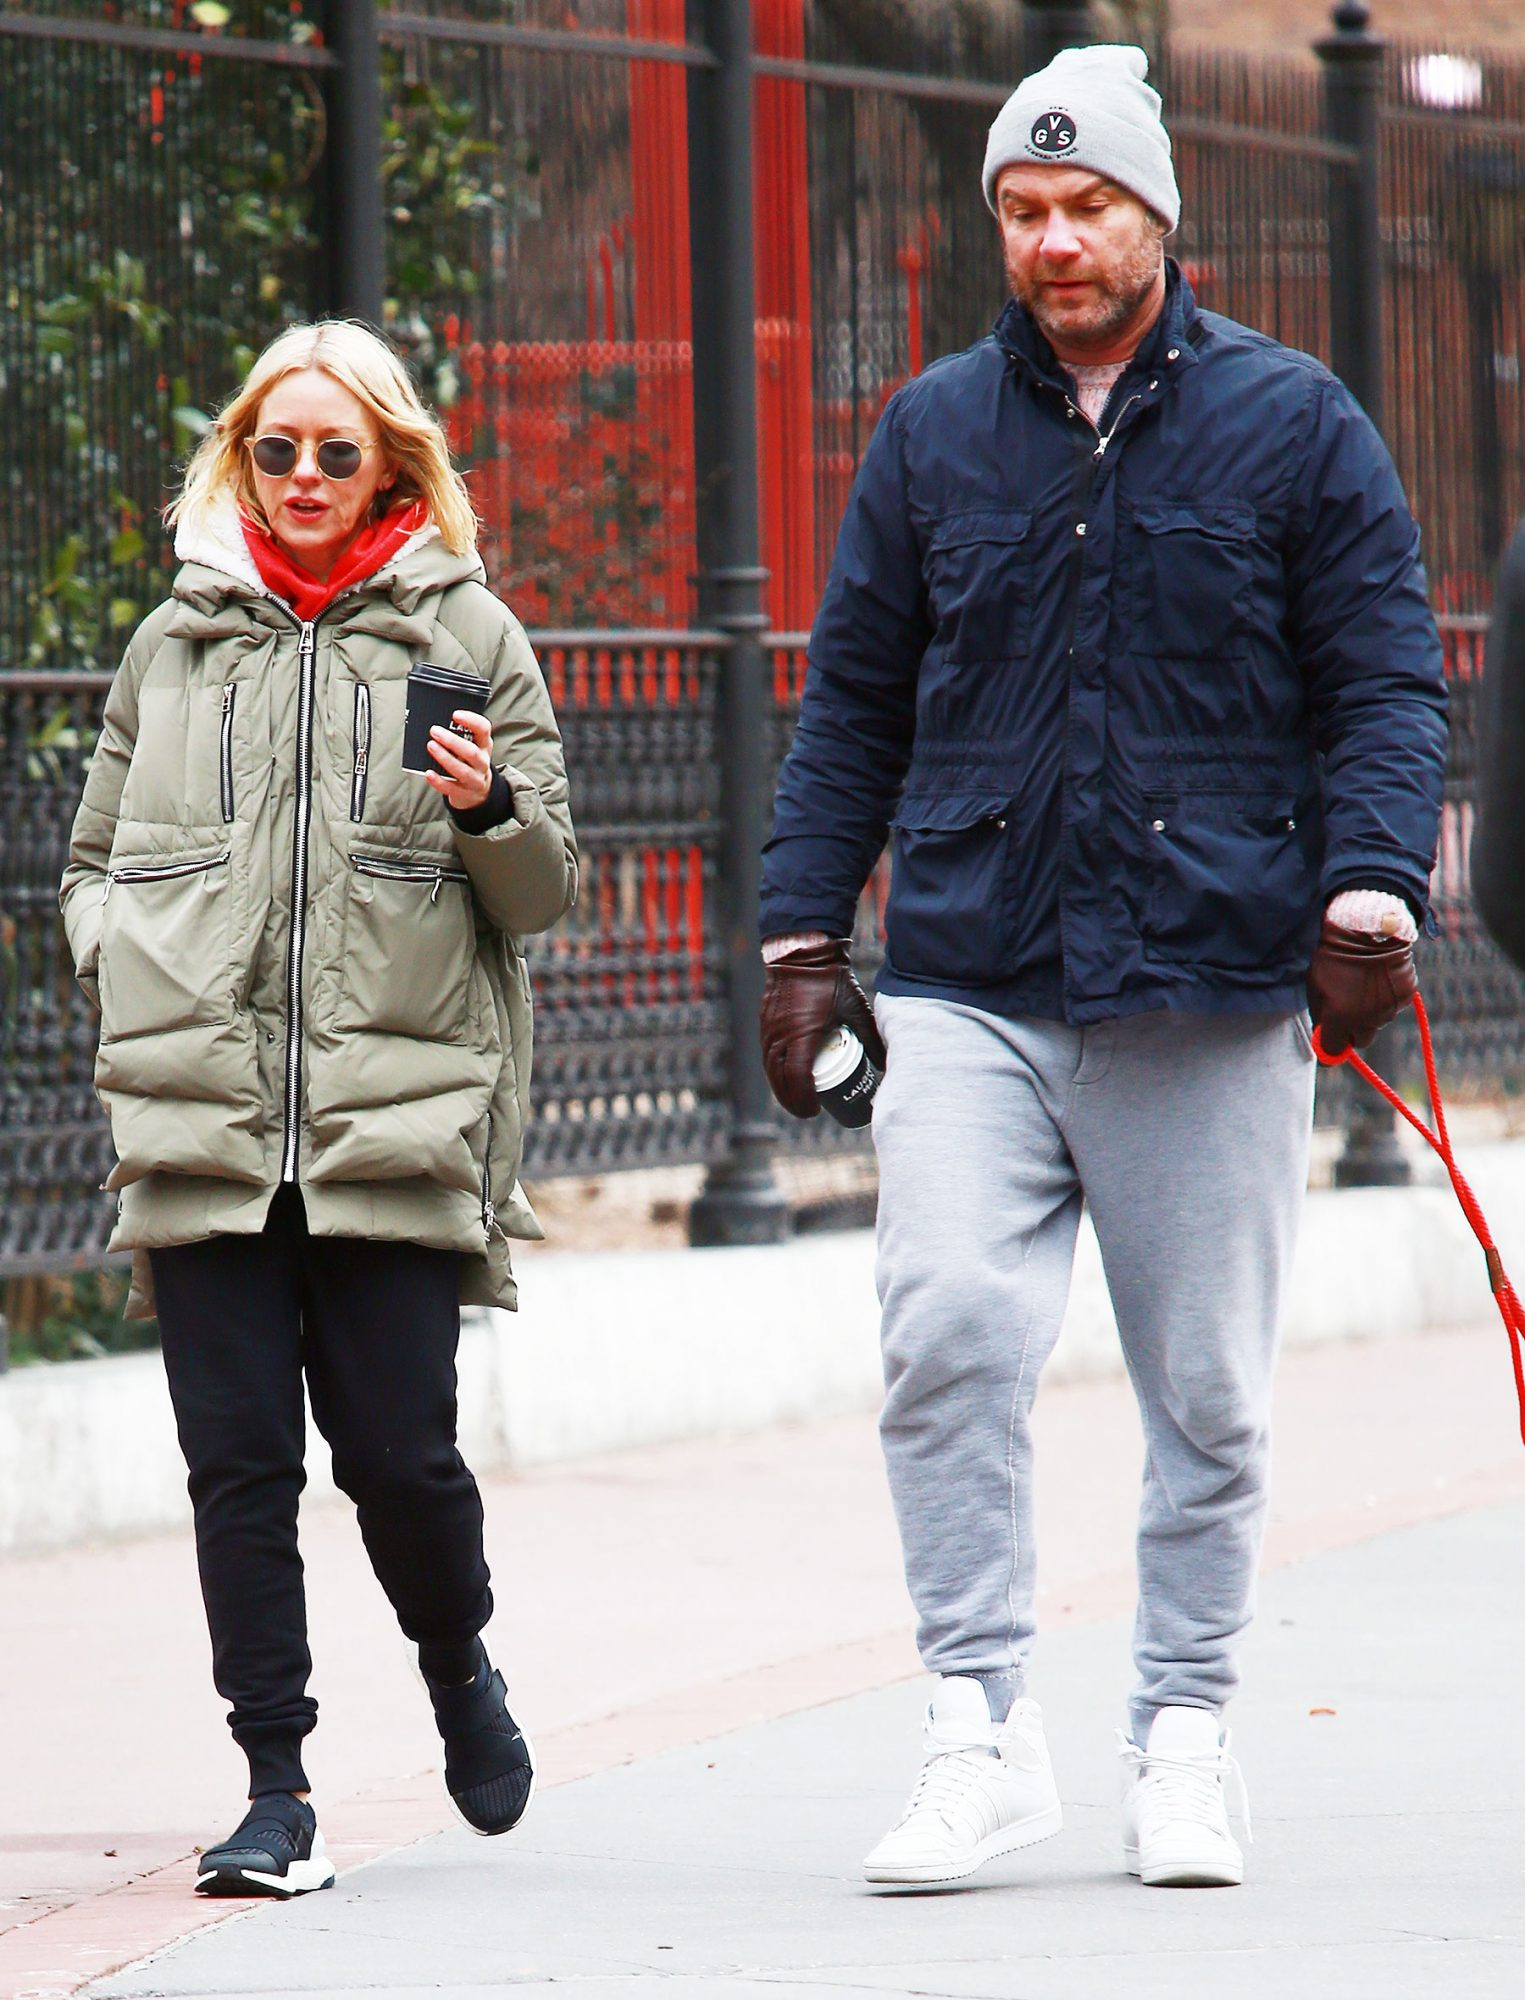 EXCLUSIVE: Naomi Watts And Liev Schreiber Reunite For Morning Coffee And Walk Their Dog In Tribeca In New York City